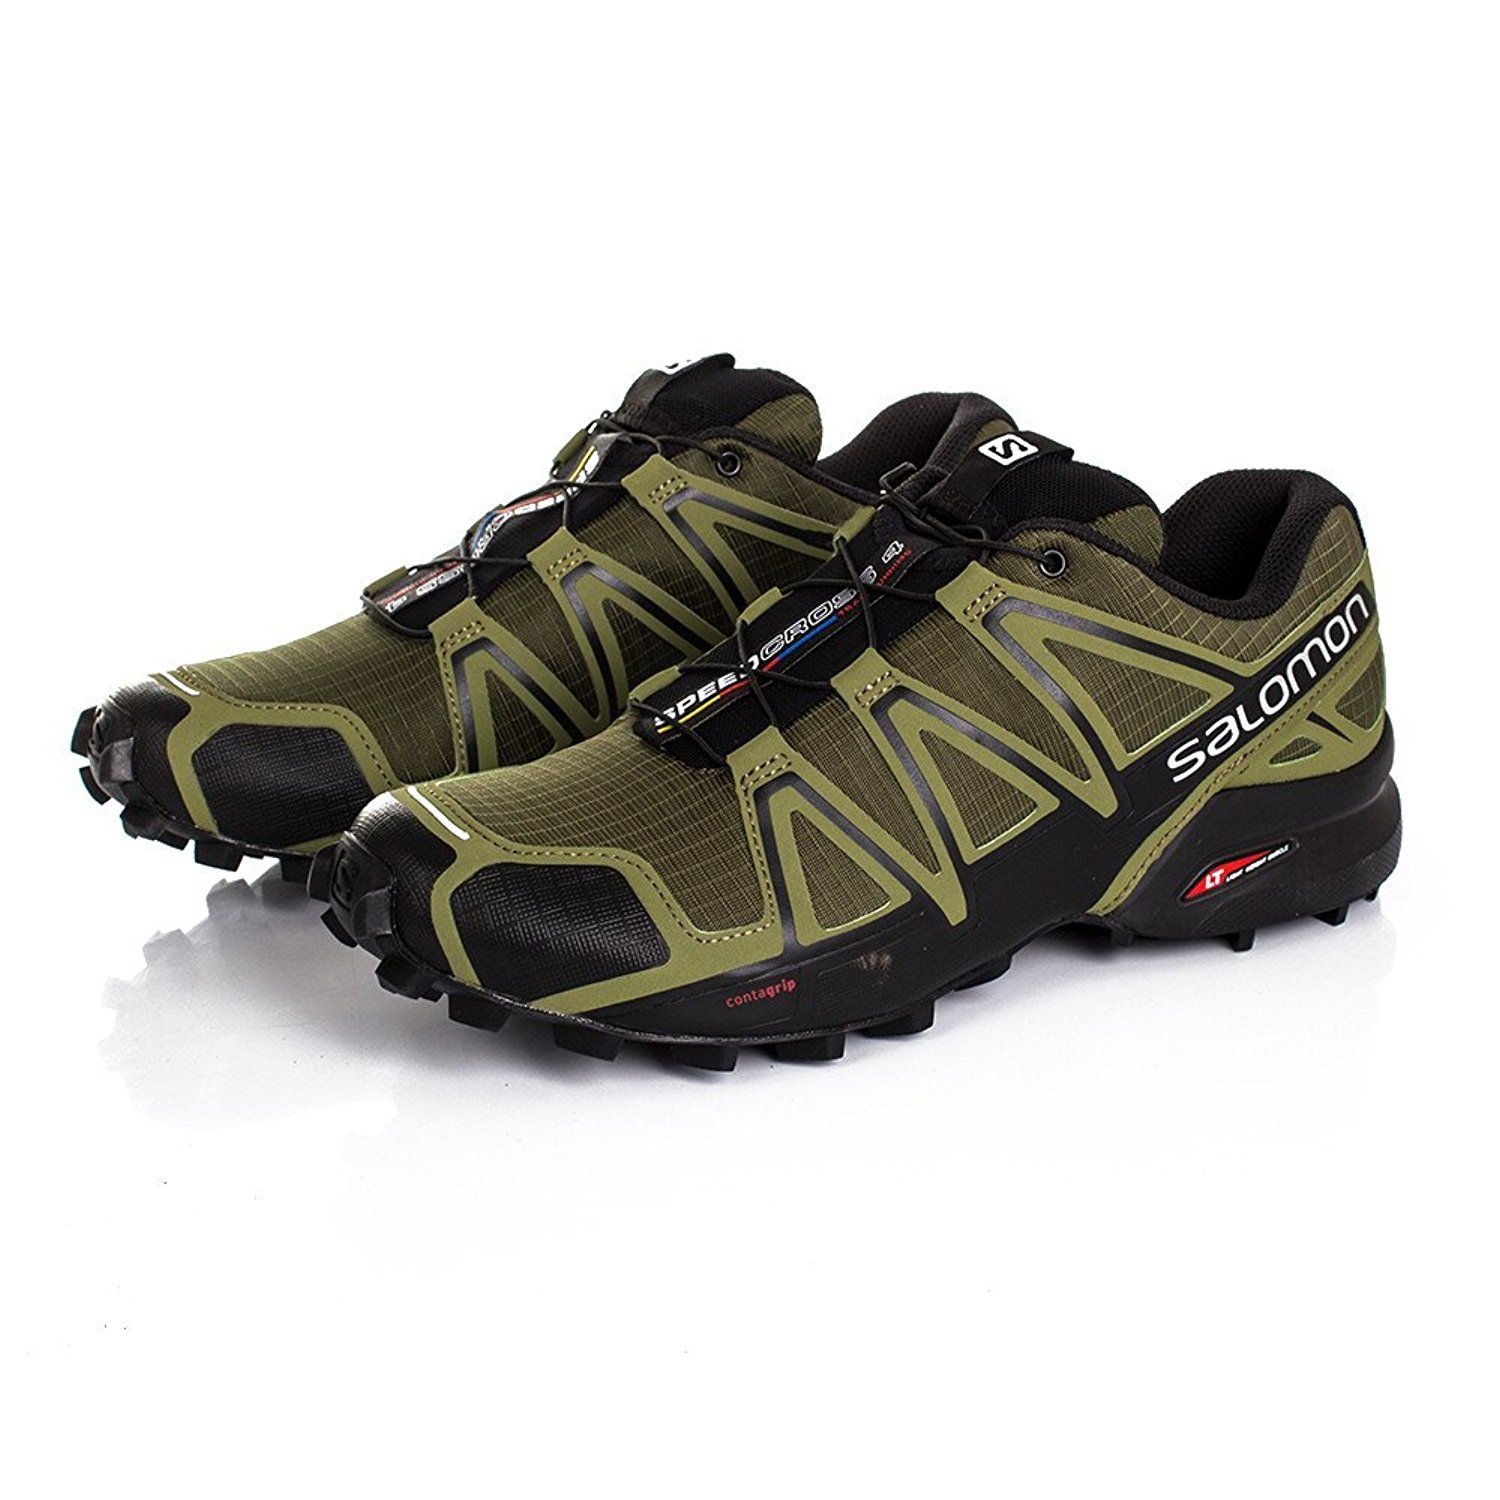 Salomon Speedcross 4 Scarpe Da Trail Corsa- AW17 - 45.5  Amazon.it  Scarpe  e borse 60b08a2be